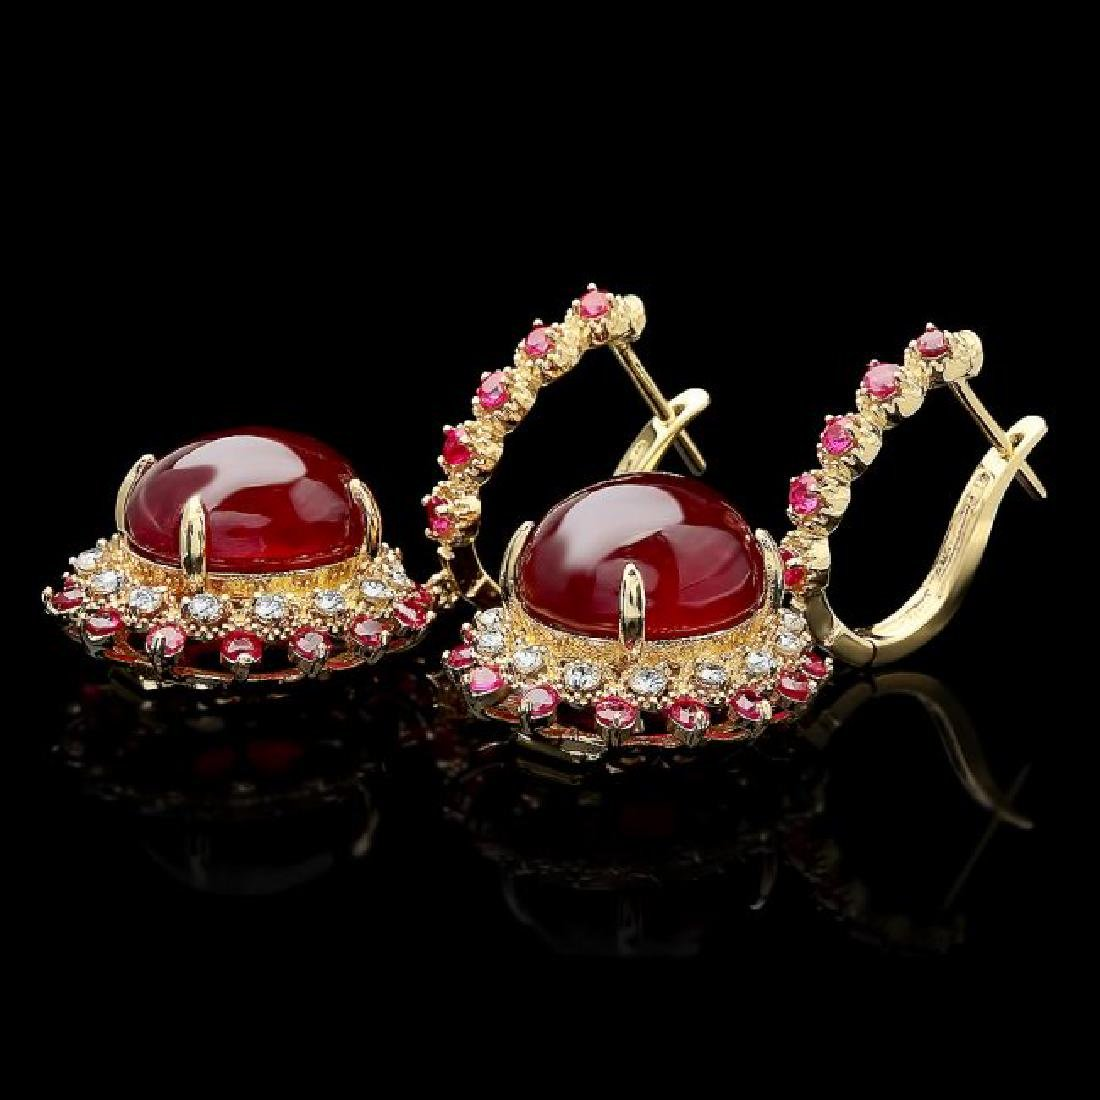 14k Gold 24.5ct Ruby 0.70ct Diamond Earrings - 2